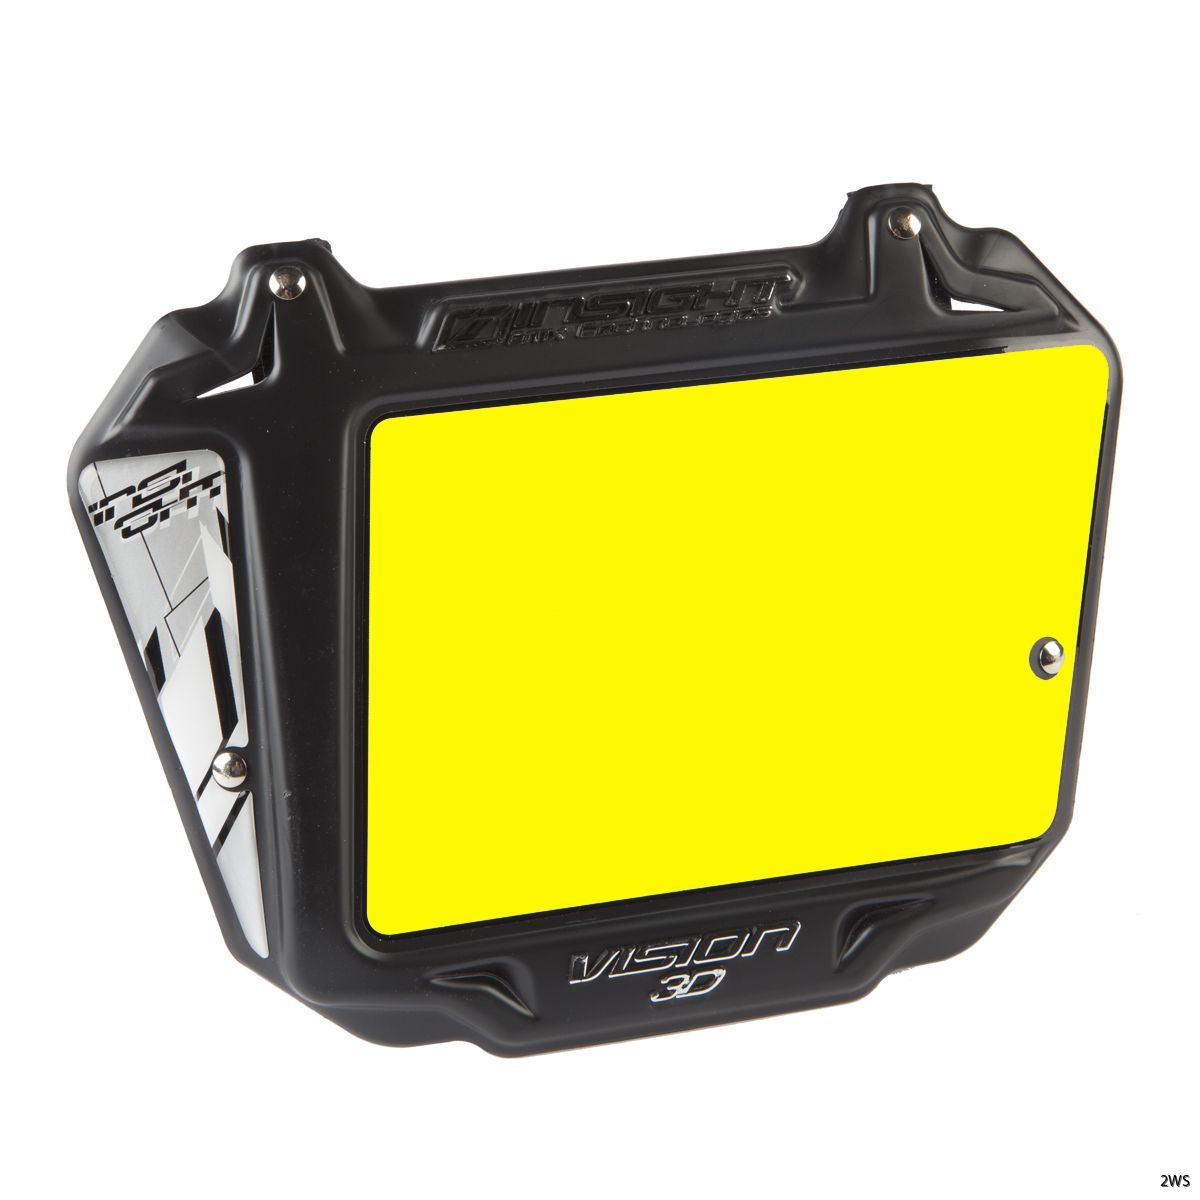 insight-number-plate-vision-3d-pro-yellow-bg (1)